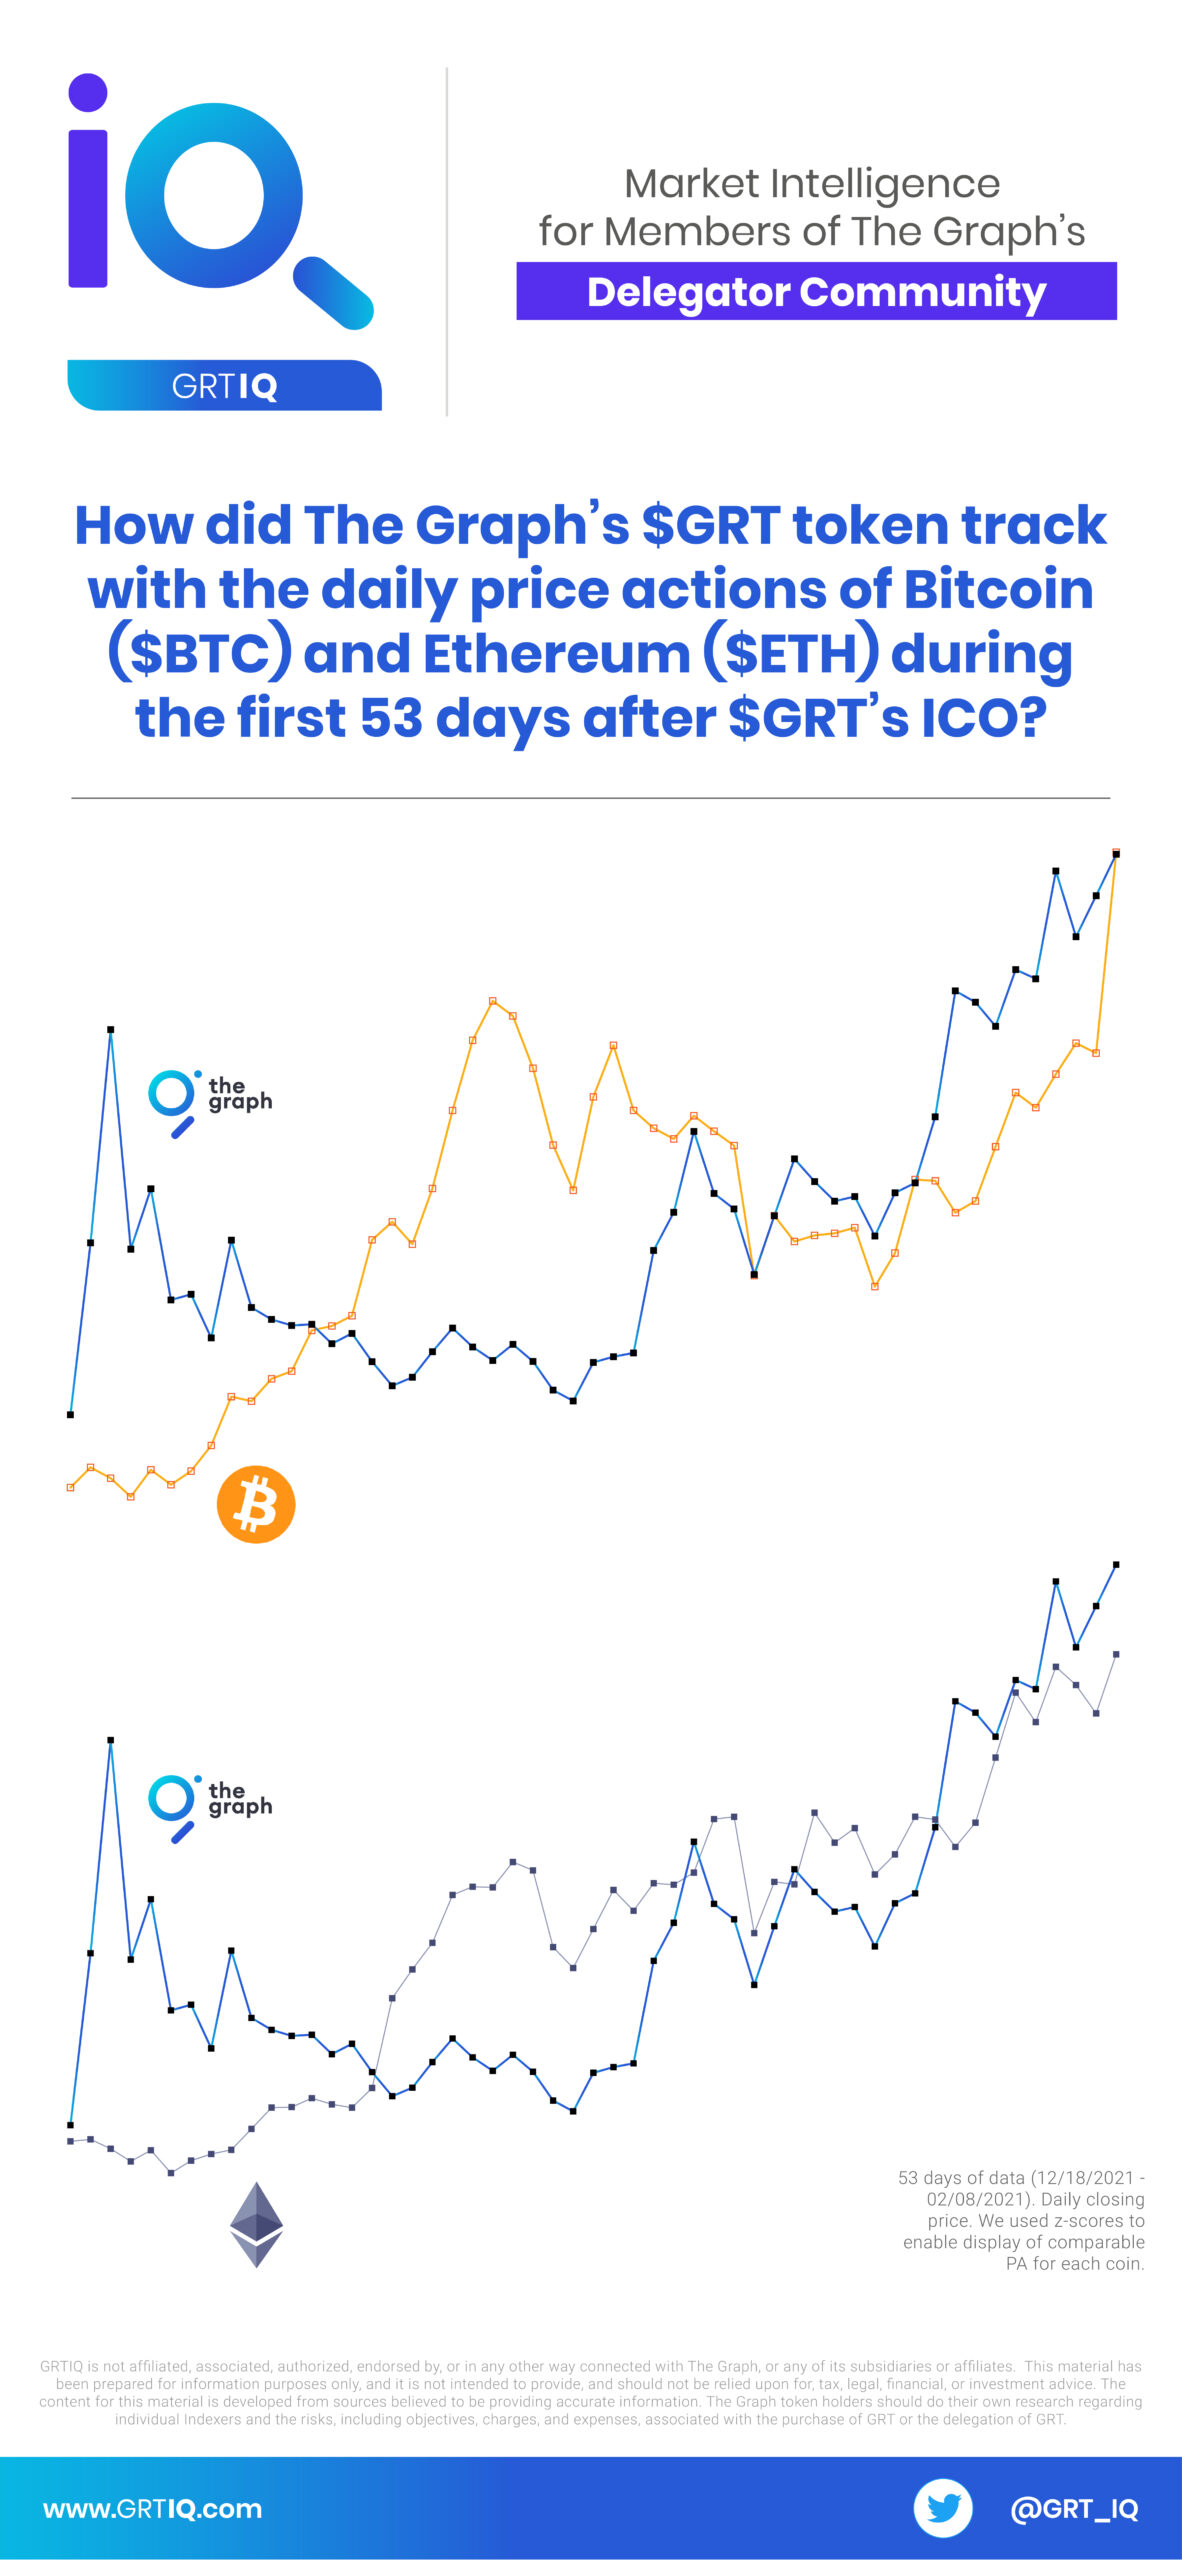 We created this illustration to see if The Graph's GRT followed the price action of Bitcoin (BTC) and Ethereum (ETH).